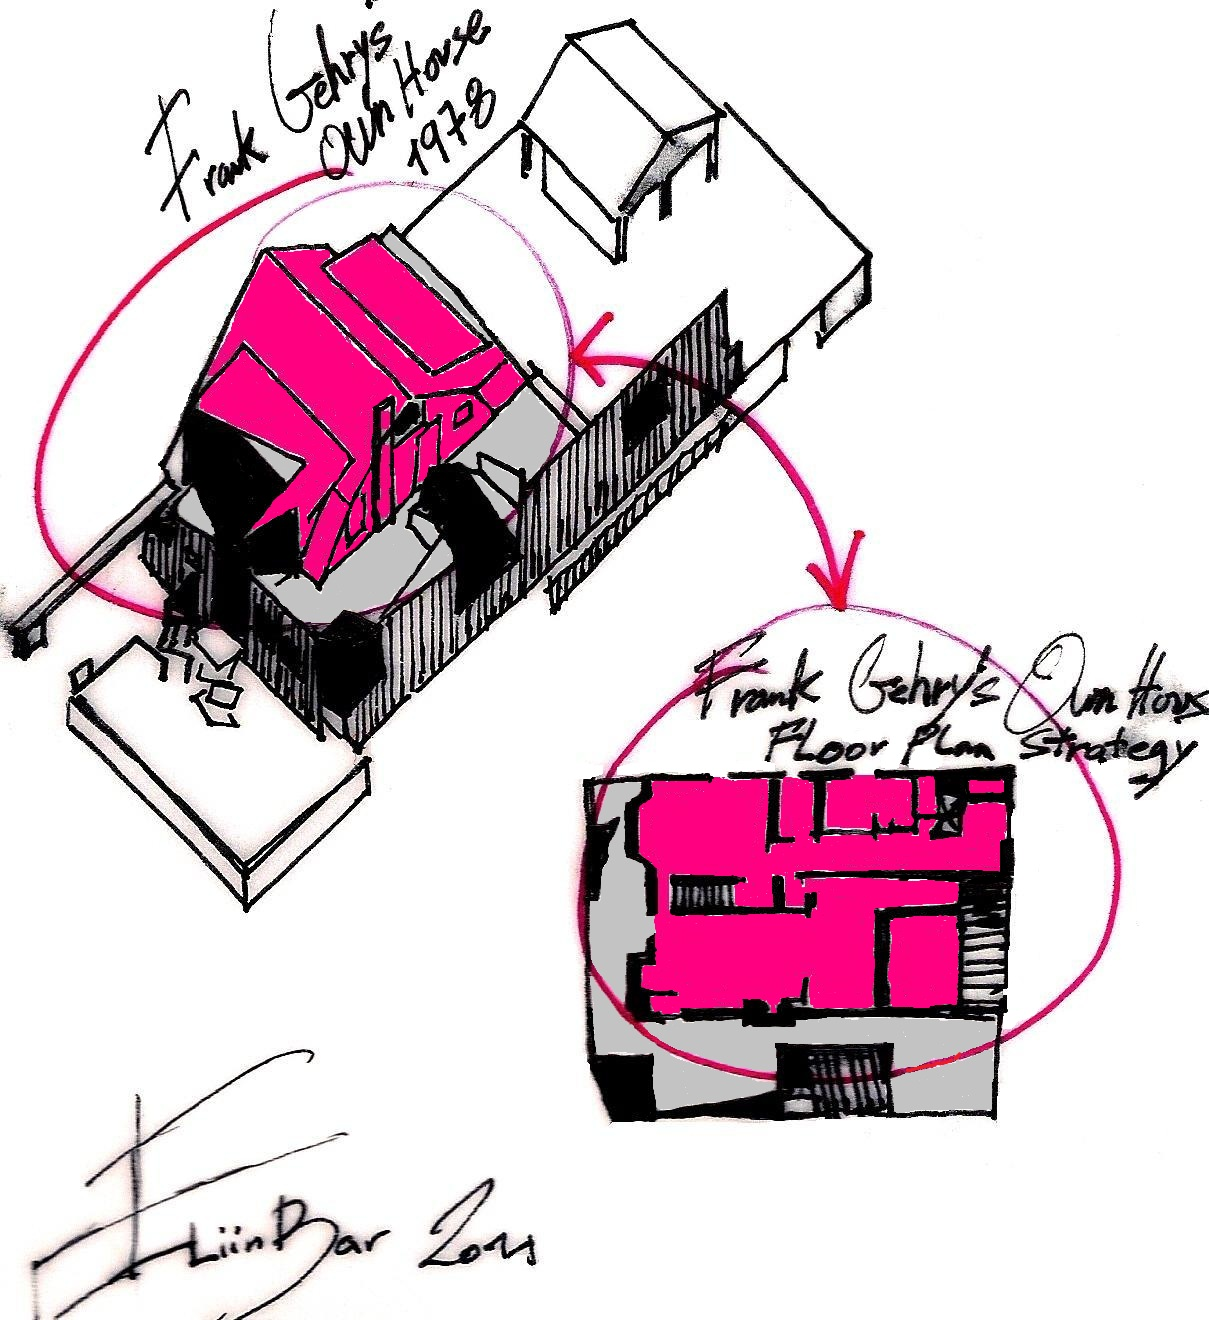 Learning From Frank Gehry Chapter 2 His Floor Plan